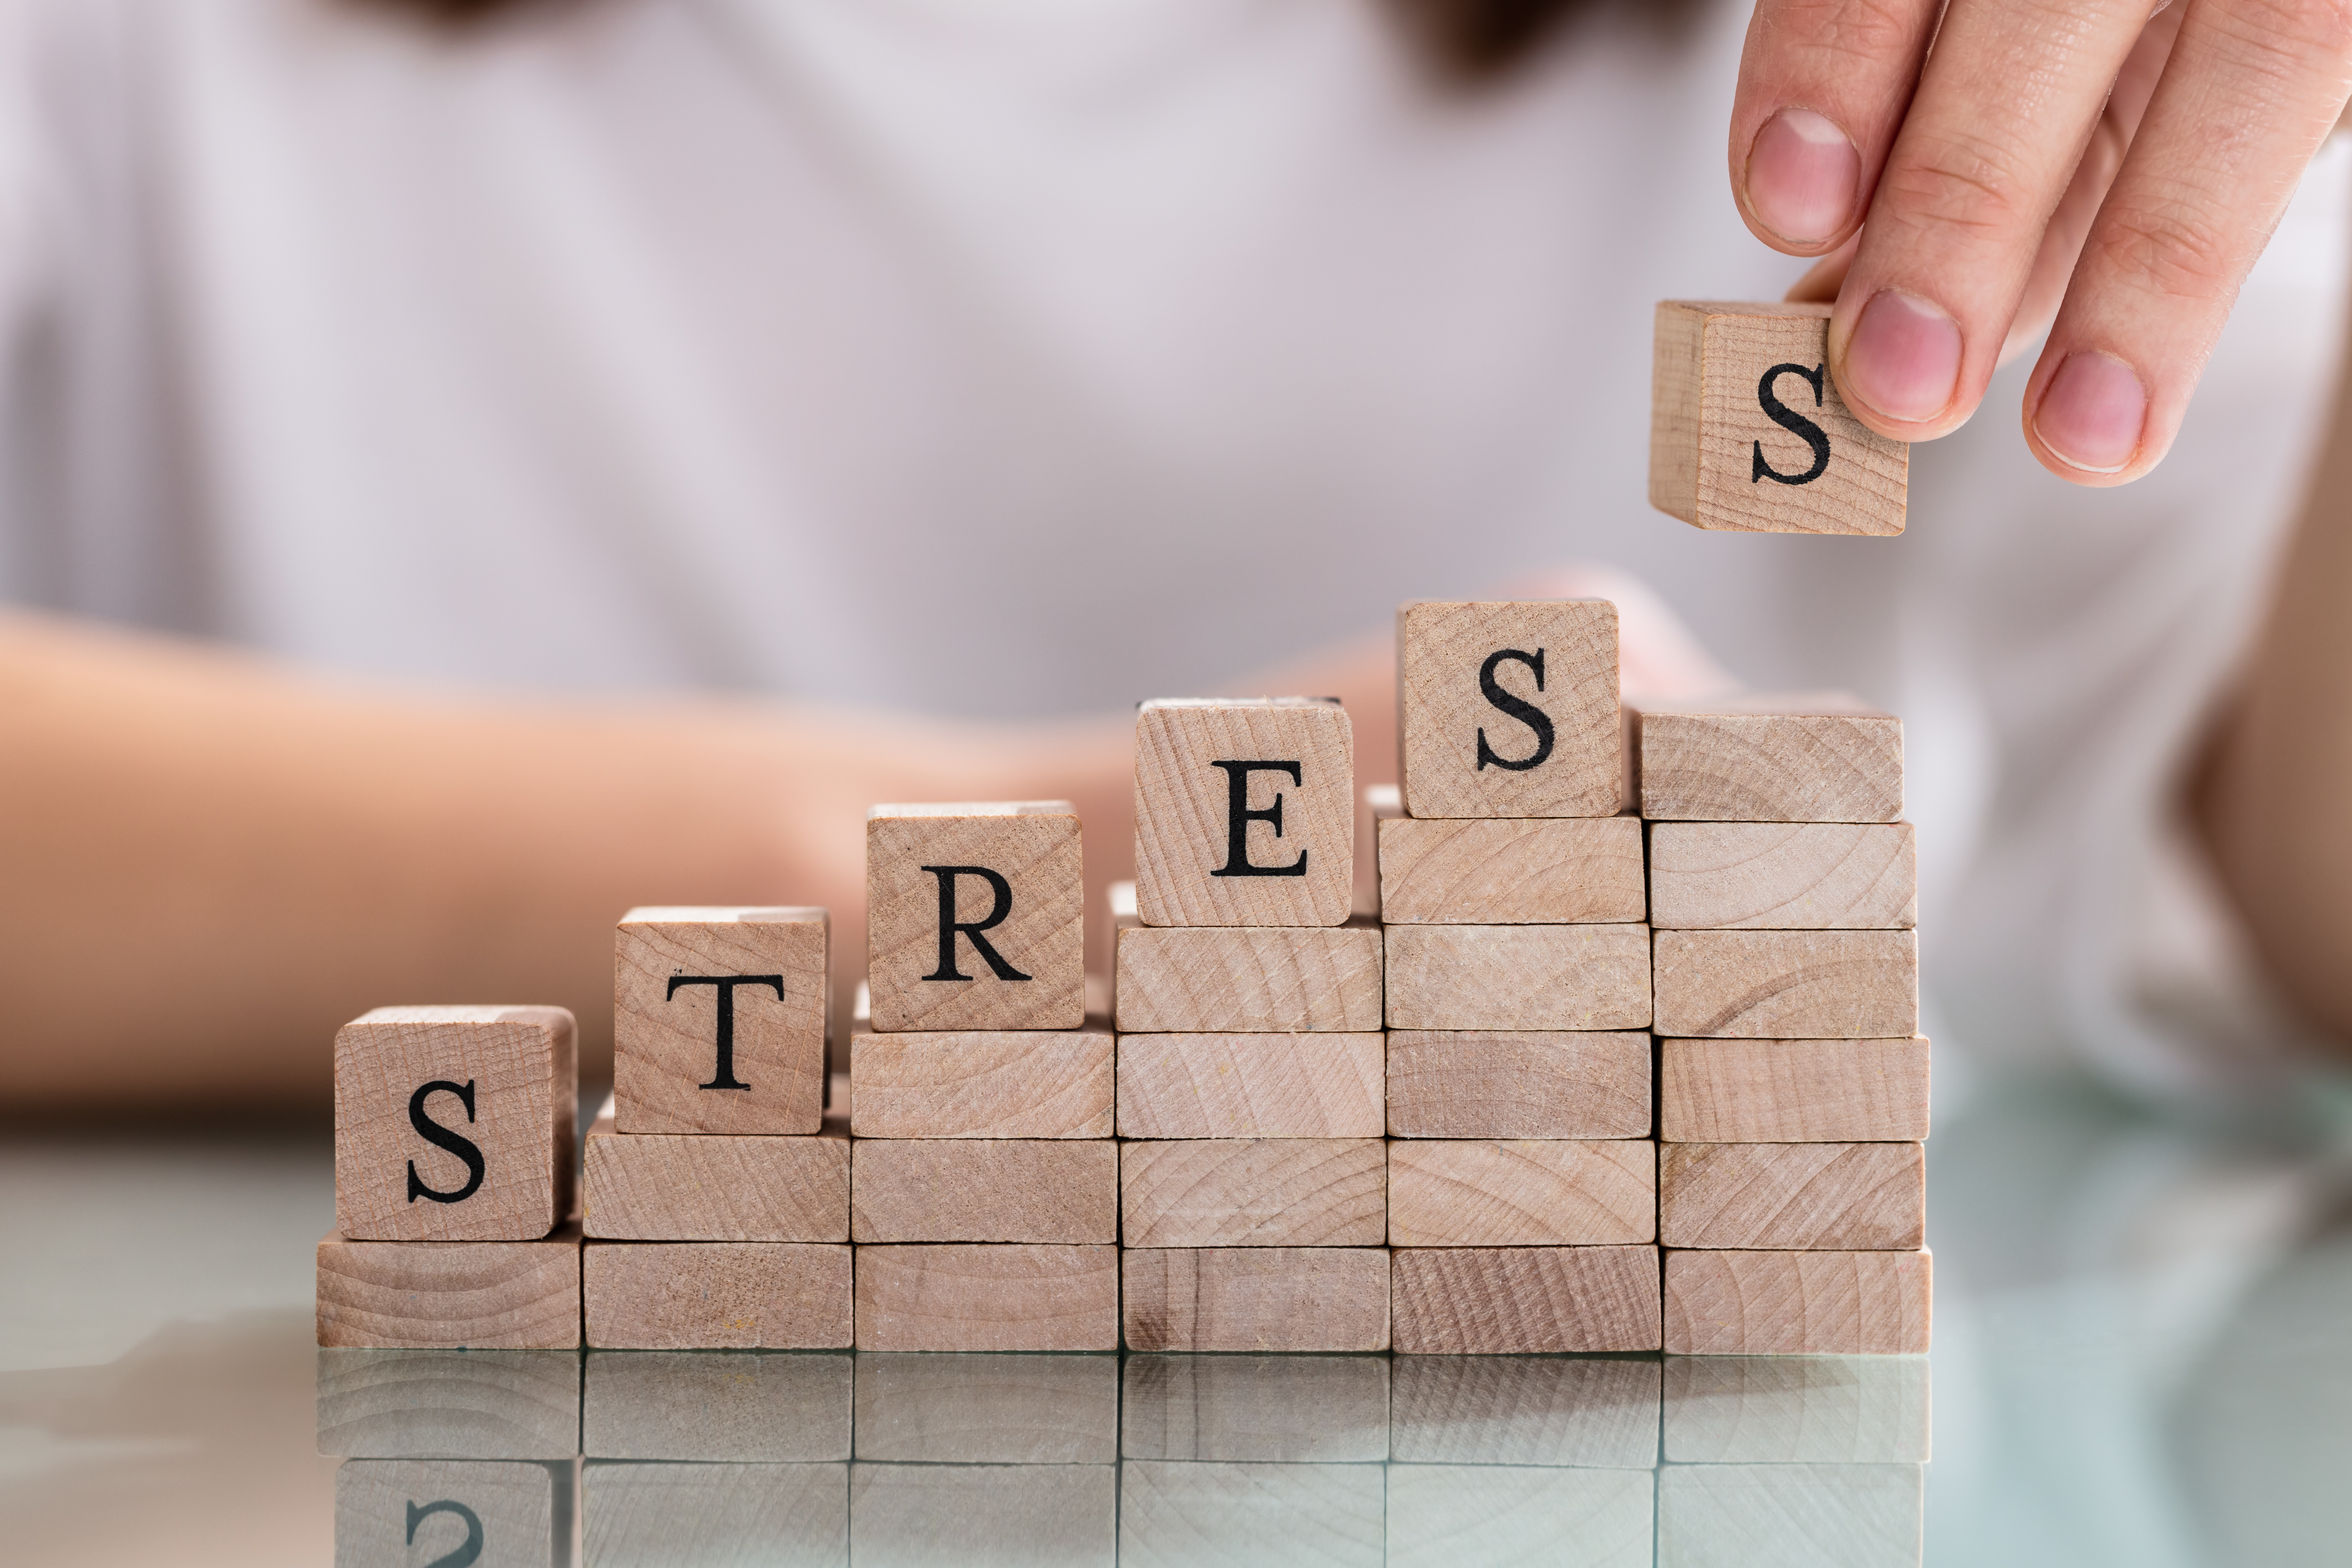 reduce effects of stress